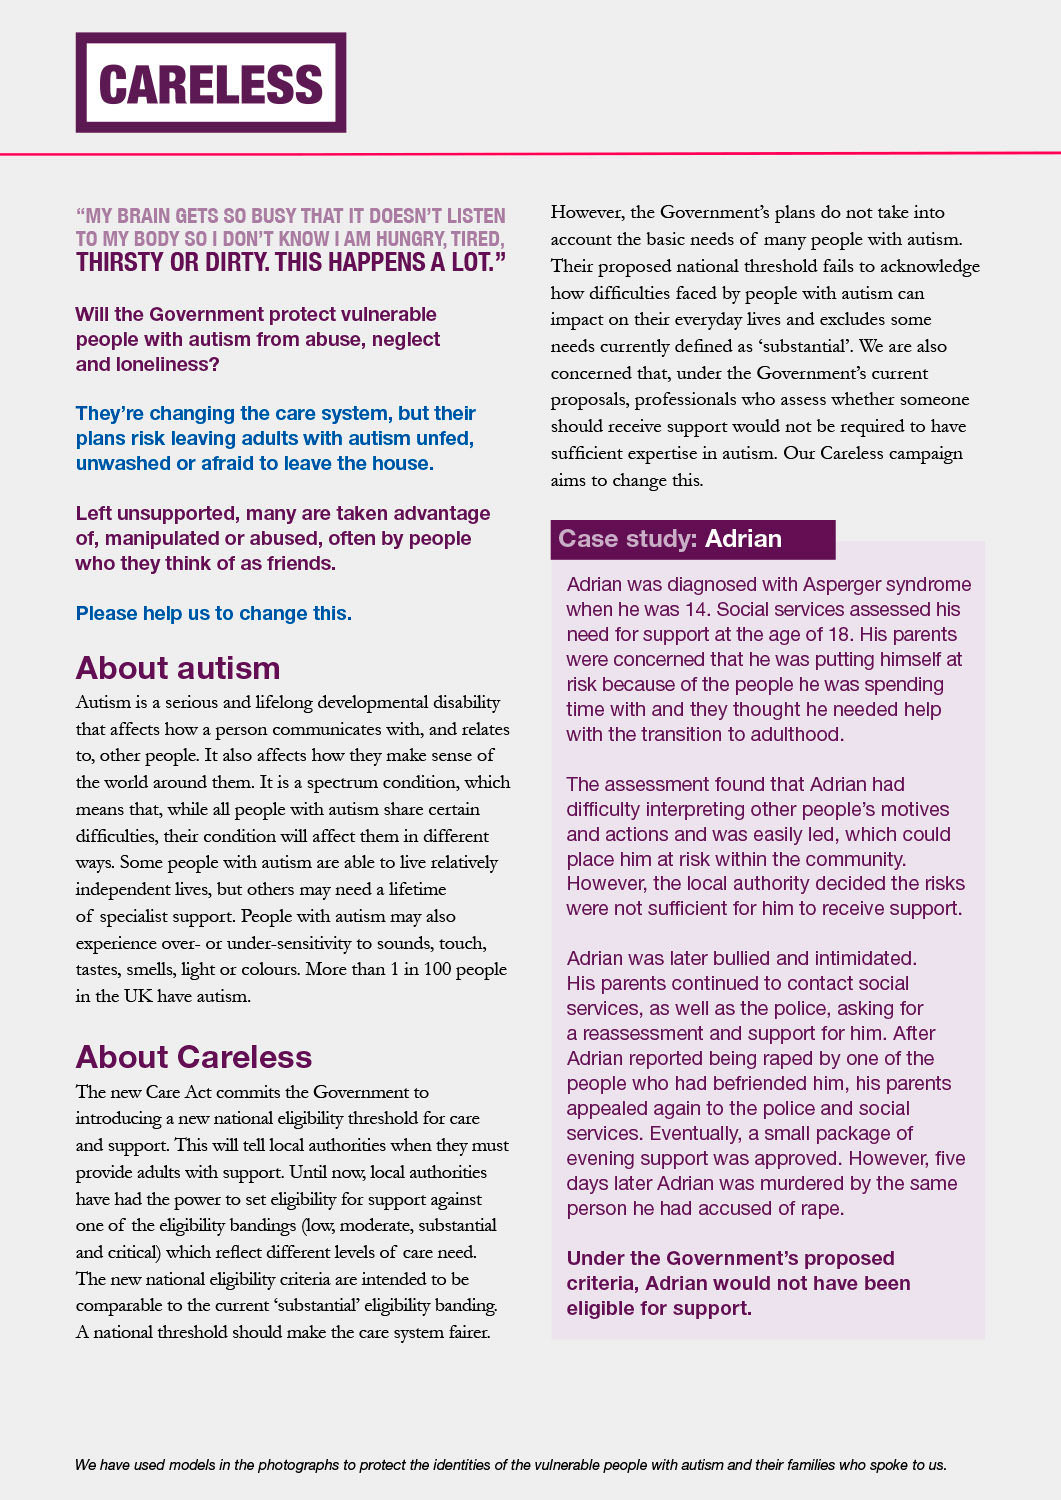 National-Autistic-Society-Careless-campaign-report-(1)-2.jpg